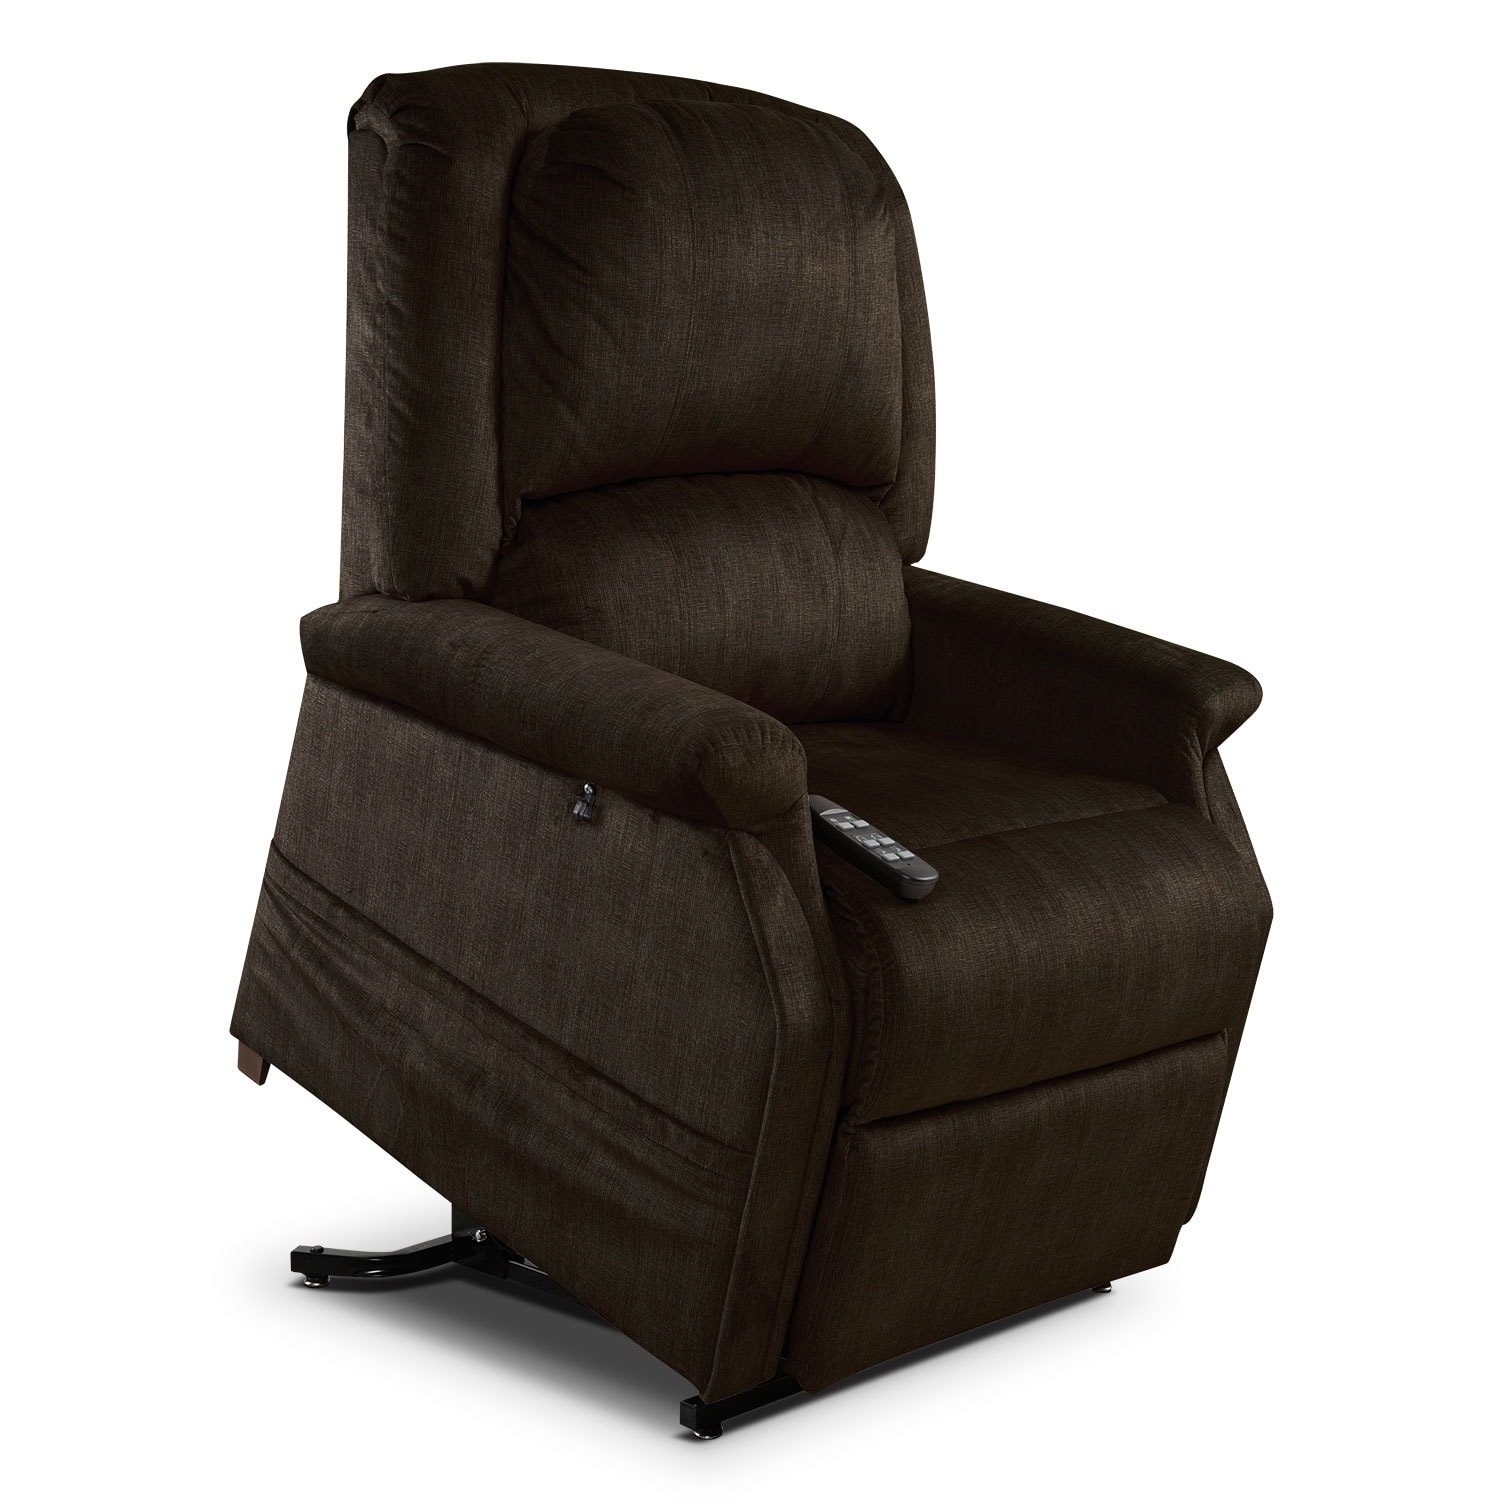 Living Room Furniture - Manny Lift Chair - Chocolate